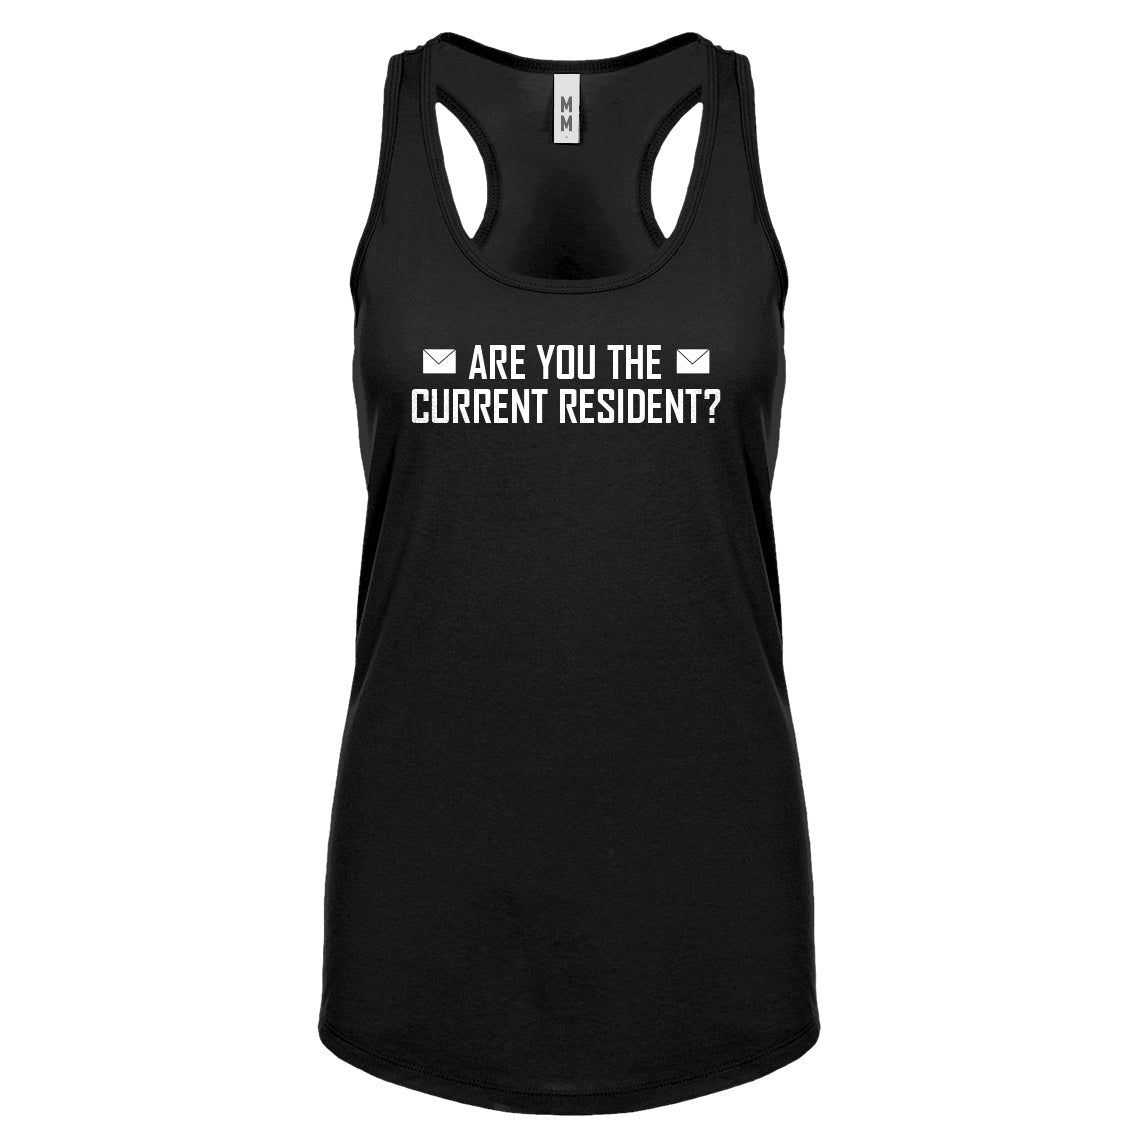 Racerback Are you the Current Resident? Womens Tank Top